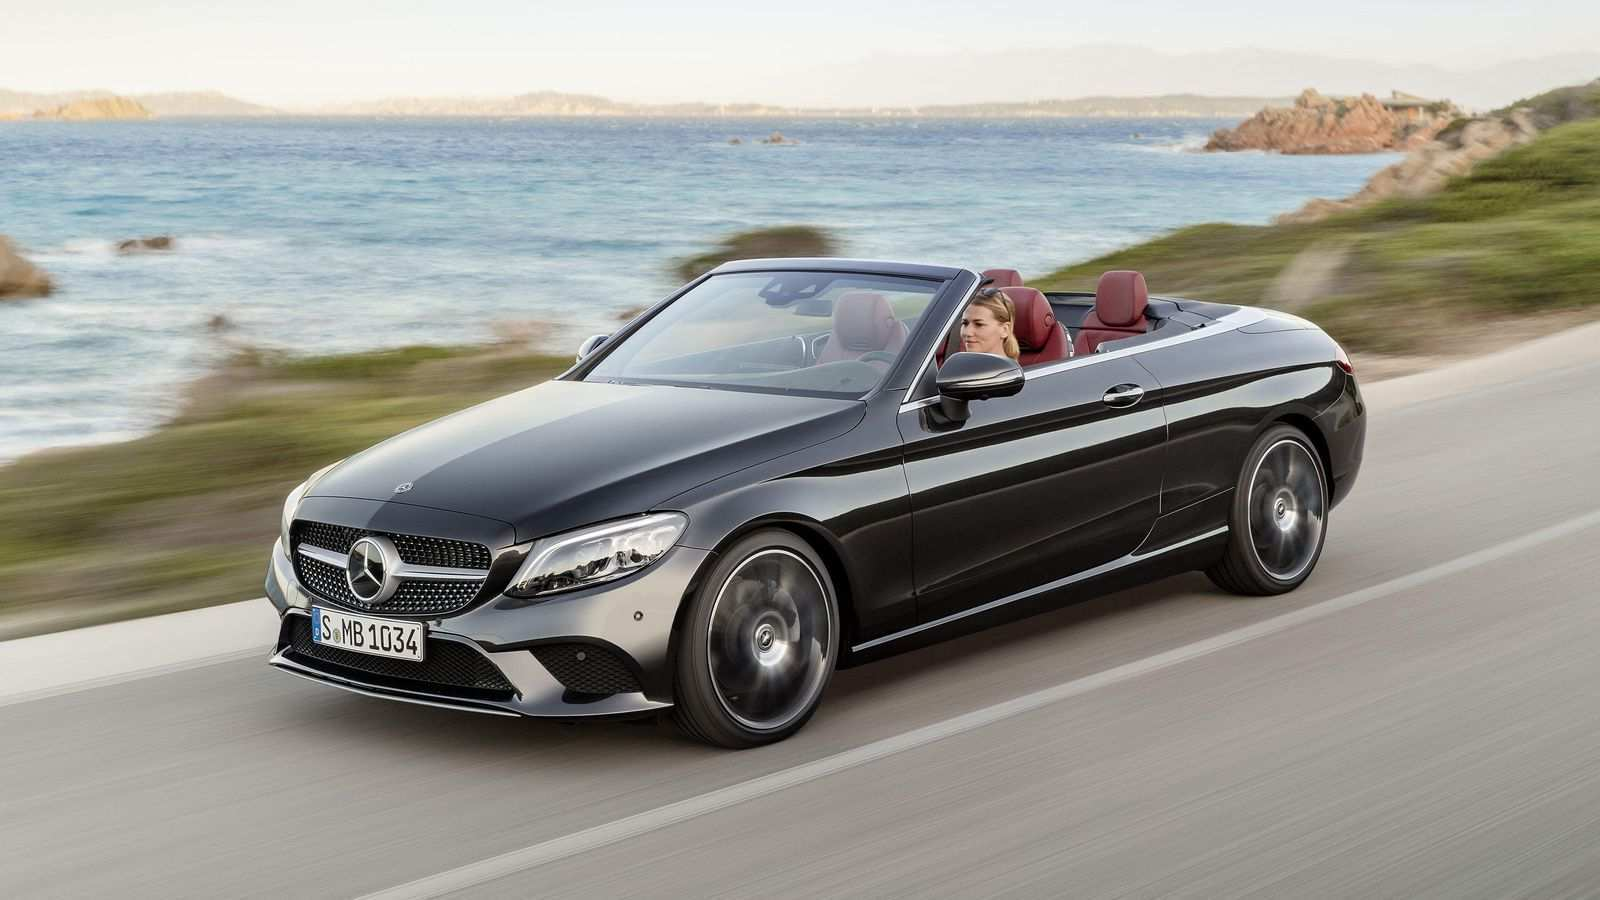 40 Gallery of 2019 Mercedes C Class Facelift Price Rumors by 2019 Mercedes C Class Facelift Price